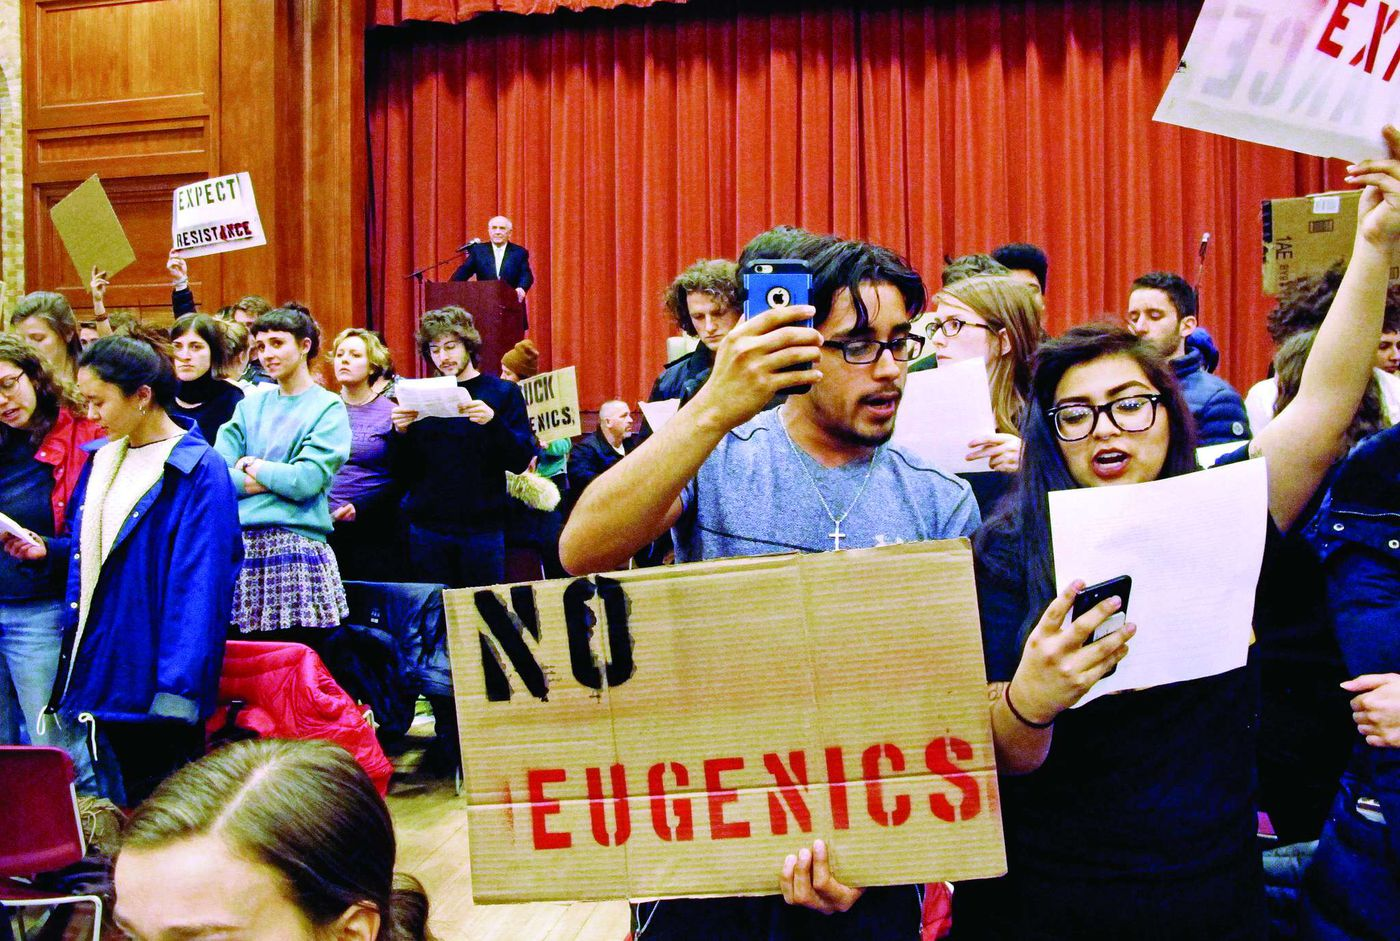 Commentary: At Middlebury, protesters assault free speech and the politics that bind us